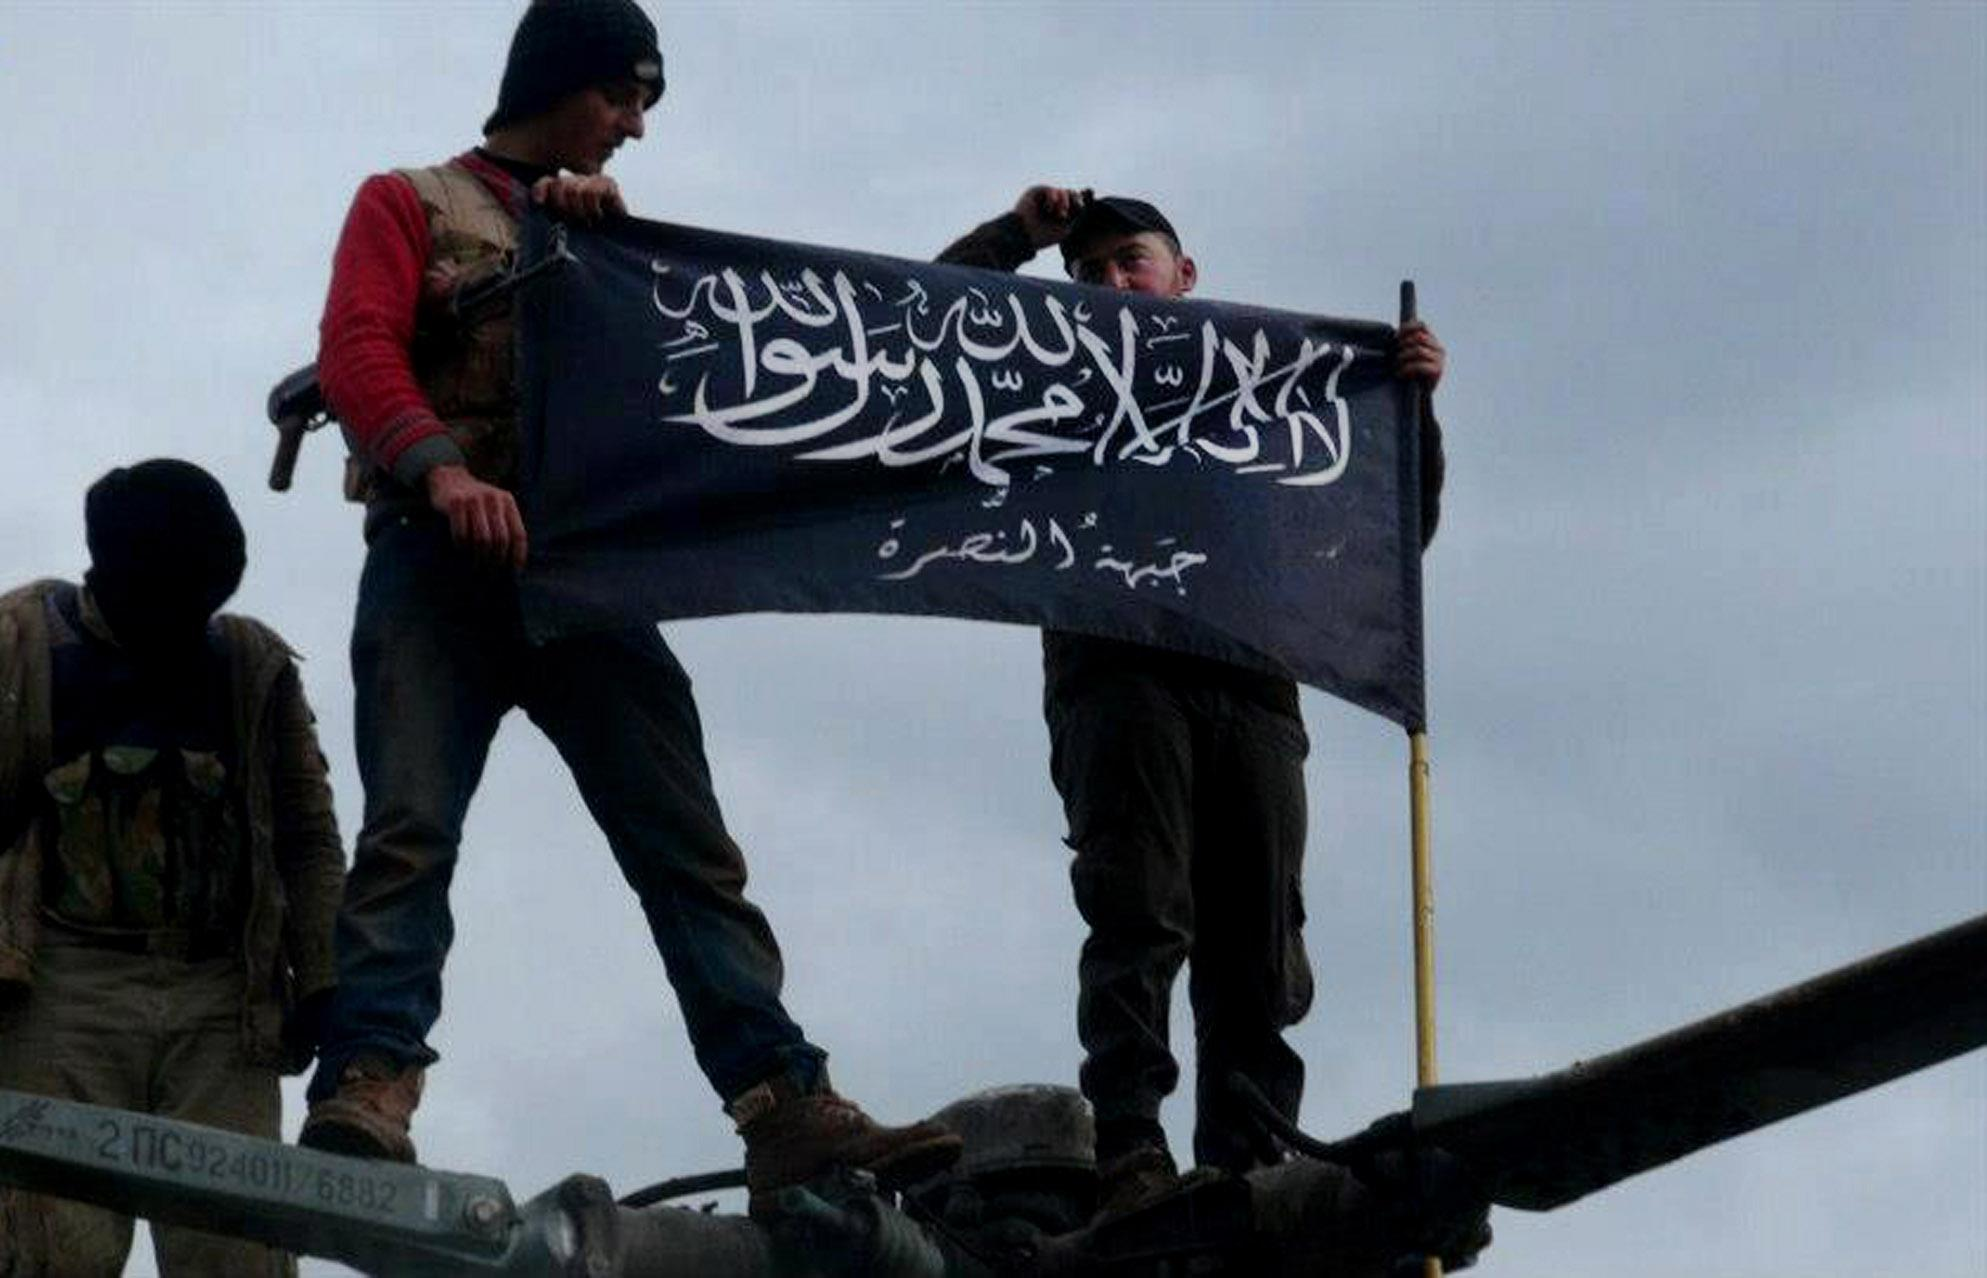 """FILE - In this Friday, Jan. 11, 2013 file citizen journalism image provided by Edlib News Network, ENN, which has been authenticated based on its contents and other AP reporting, shows rebels from al-Qaida affiliated Jabhat al-Nusra waving their brigade flag on the top of a Syrian air force helicopter, at Taftanaz air base that was captured by the rebels, in Idlib province, northern Syria. Al-Qaida's branch in Iraq said it has merged with Syria's extremist Jabhat al-Nusra, a move that shows the rising confidence of radicals within the Syrian rebel movement and is likely to trigger renewed fears among its international backers. Arabic on the flag reads, """"There is no God only God and Mohamad his prophet, Jabhat al-Nusra."""" (AP Photo/Edlib News Network ENN, File)"""